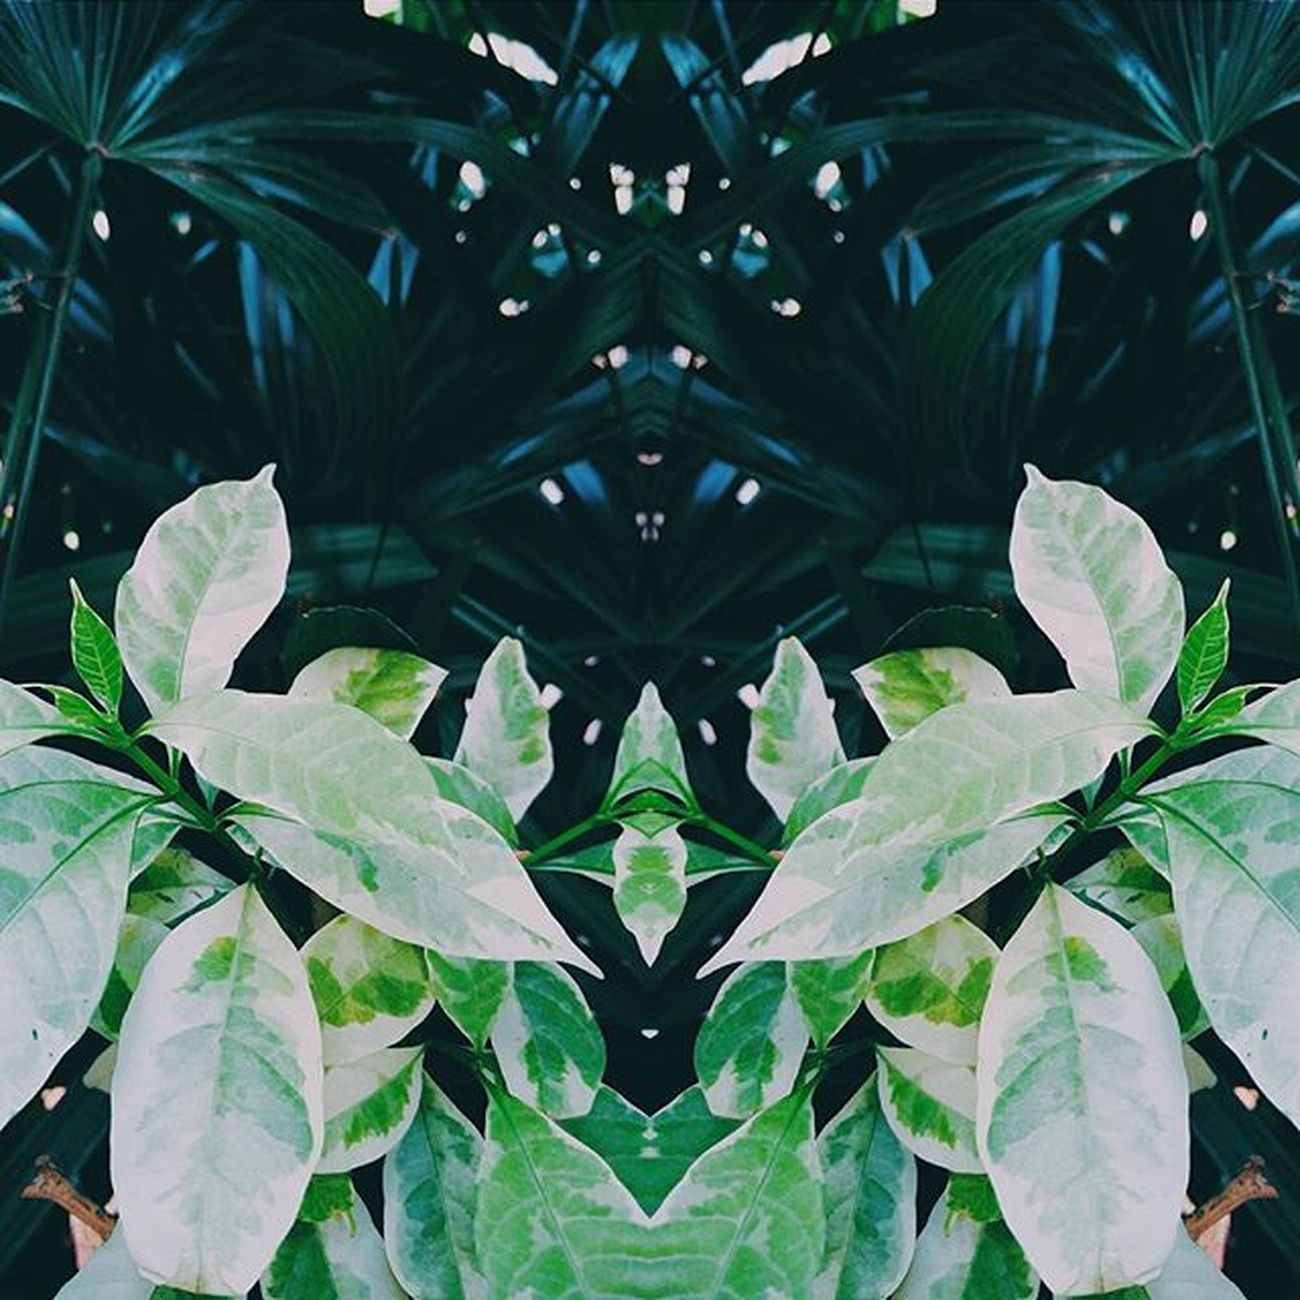 VSCO Green Plants Igers Igersindia Nature Symmetry Mirrorart Vscocam